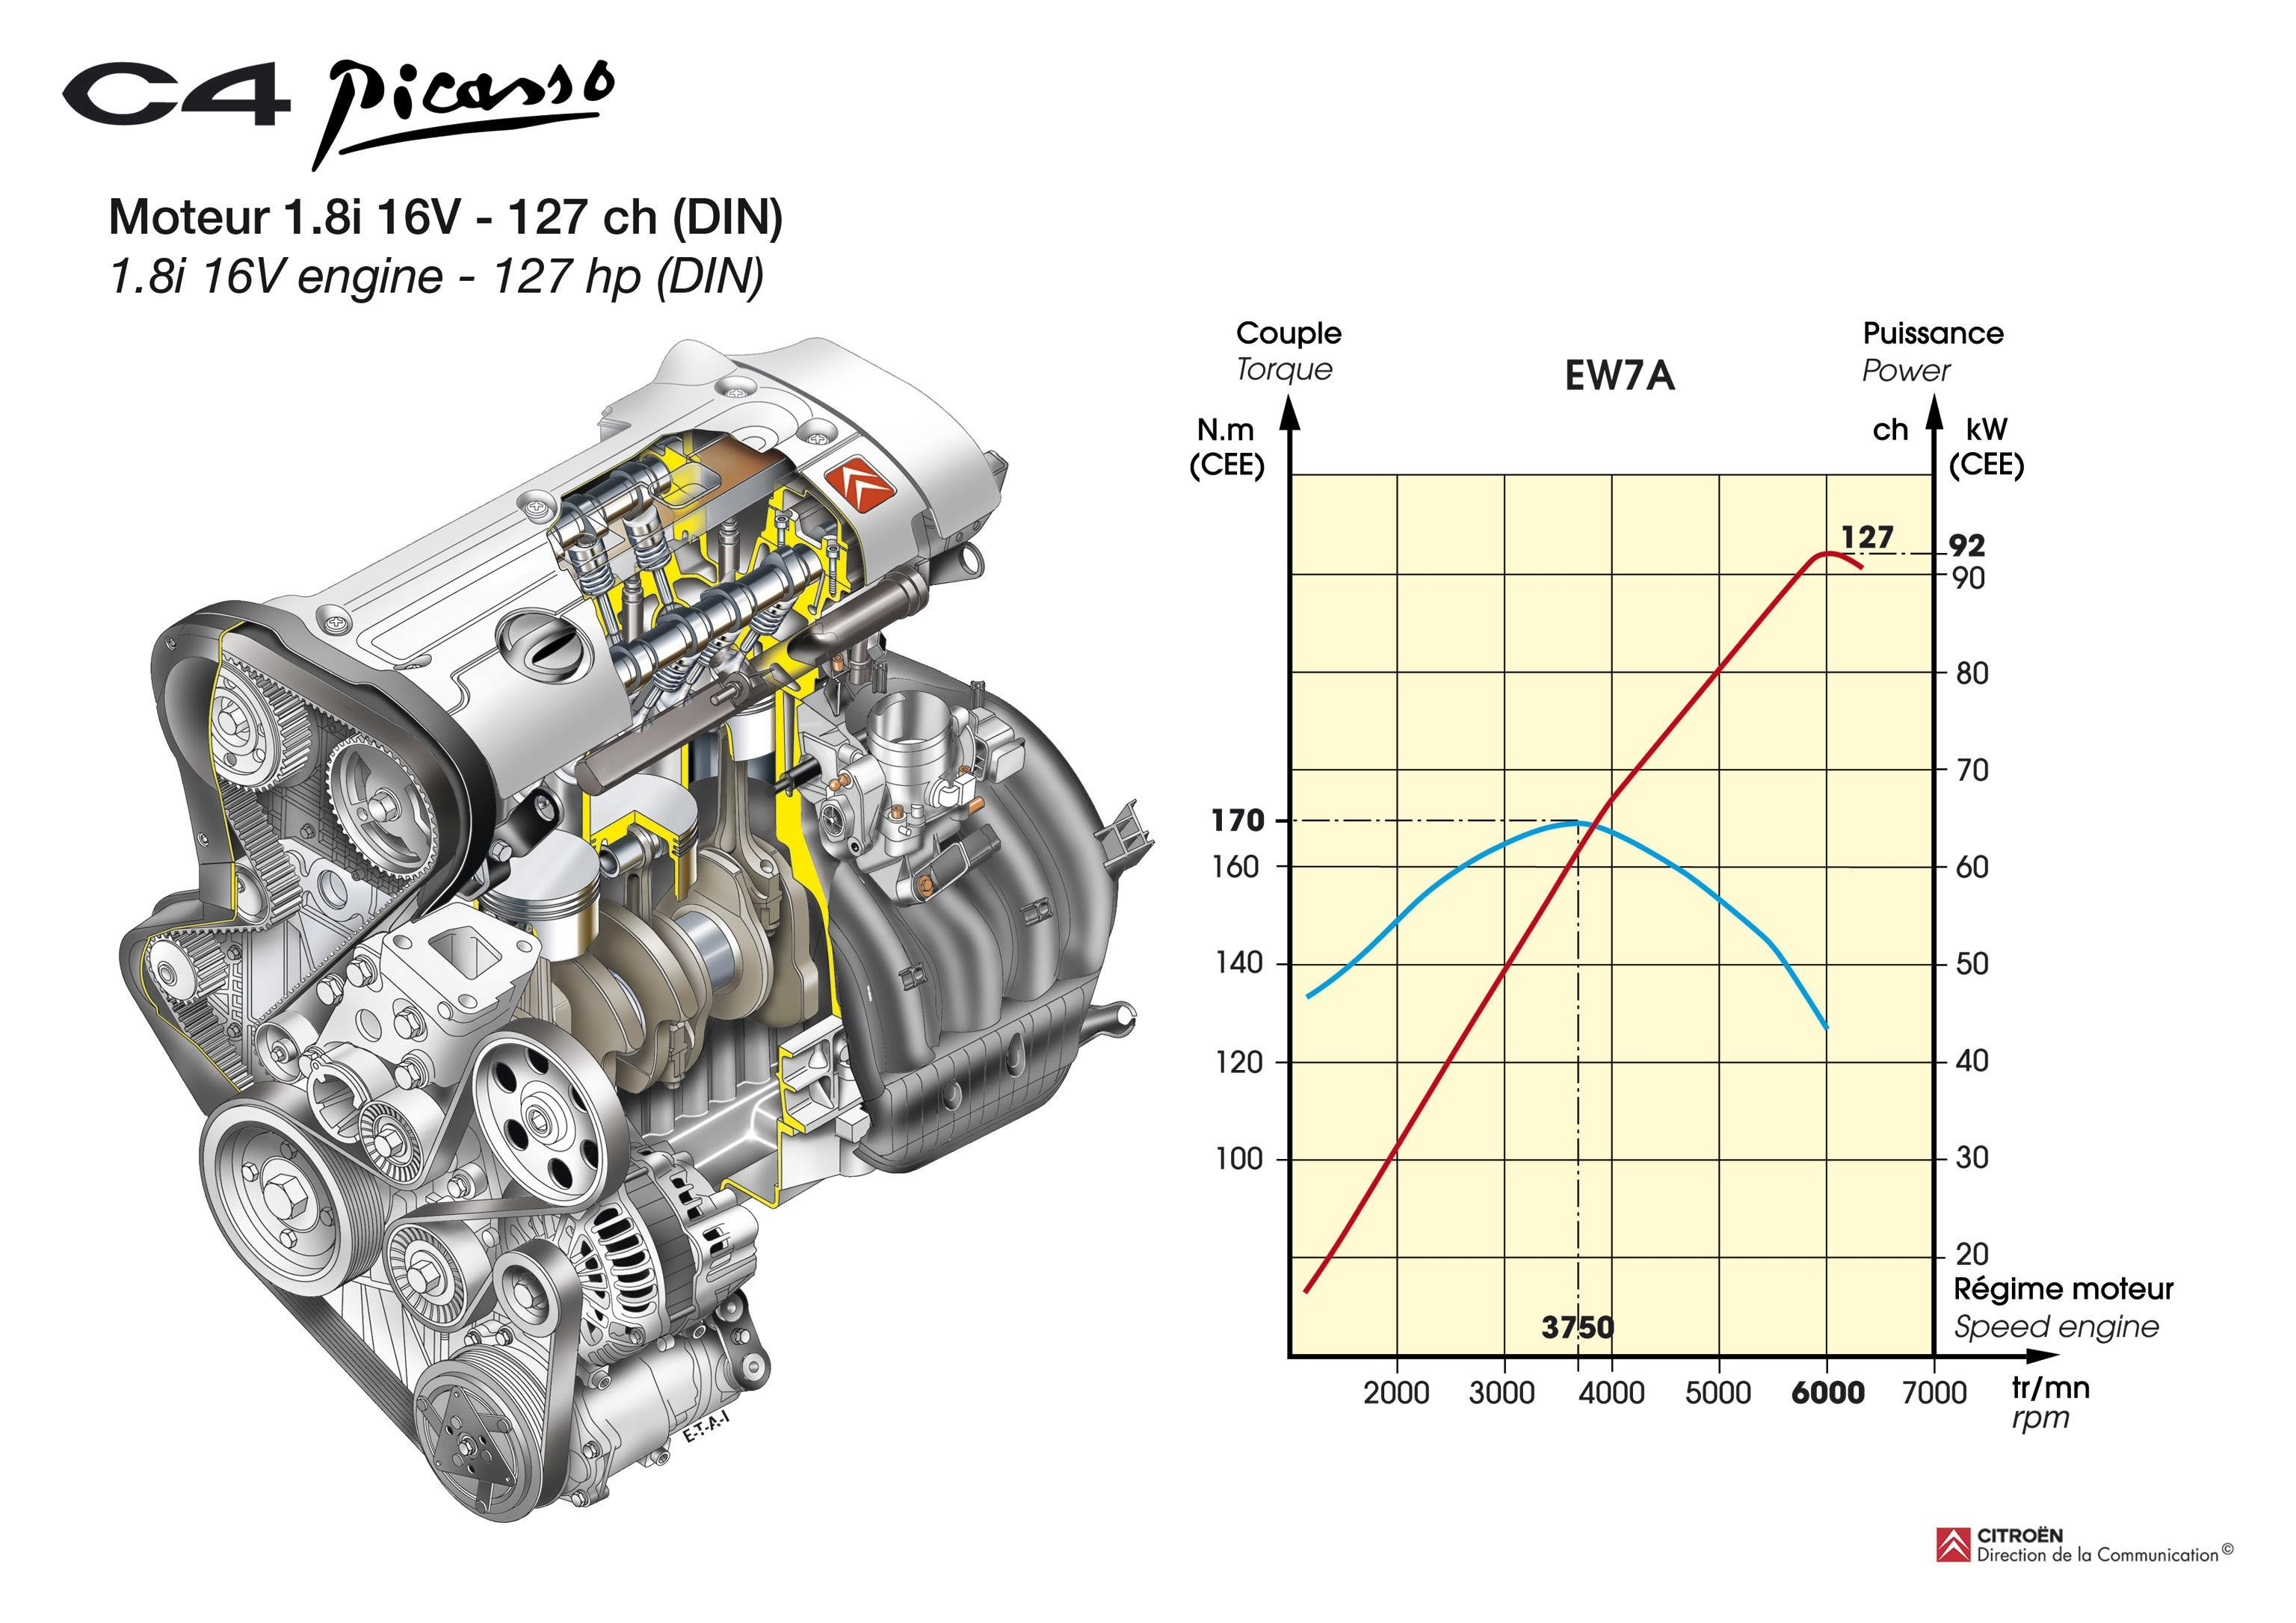 Citroen C4 Engine Diagram 2007 Citroen C4 Picasso Of Citroen C4 Engine  Diagram Fine Citroen Xsara